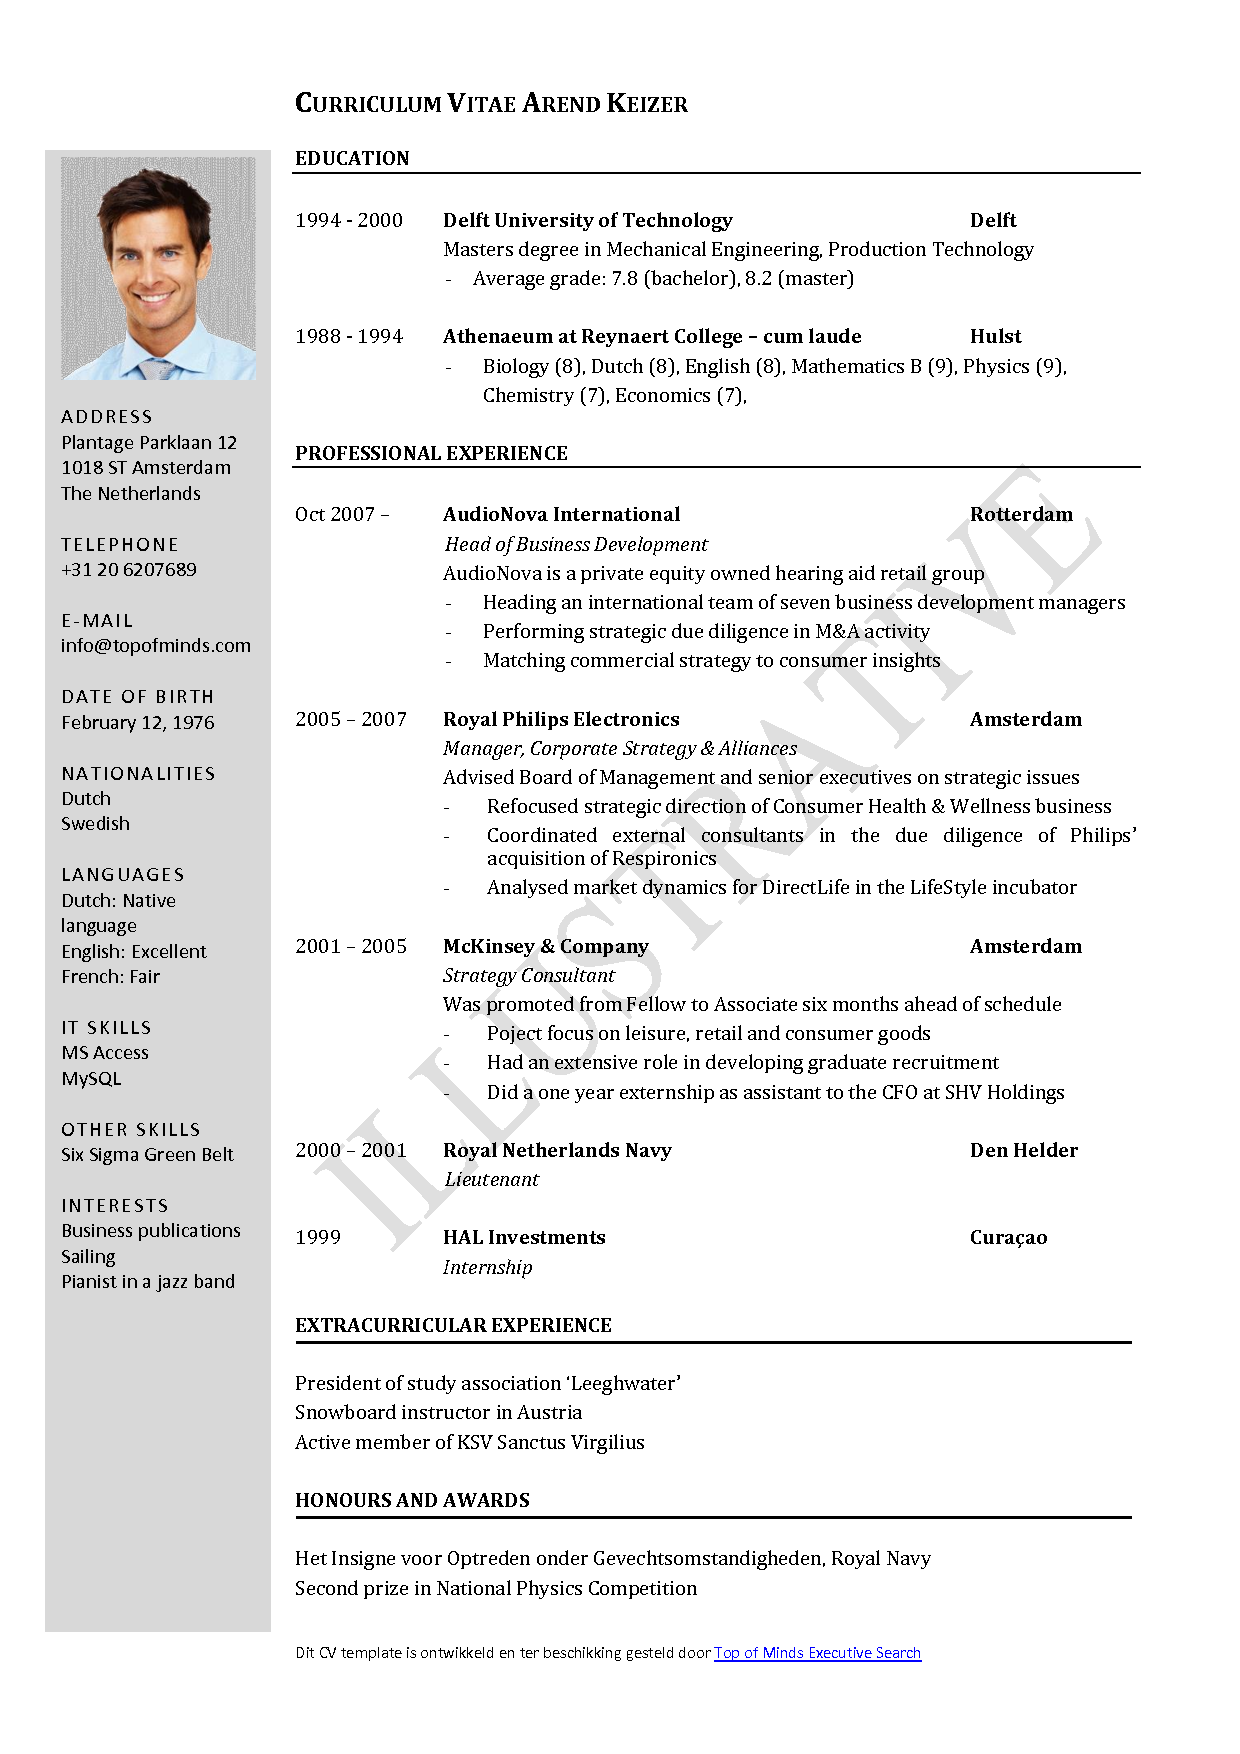 free curriculum vitae template word download cv template - Free Sample Resume Templates Word